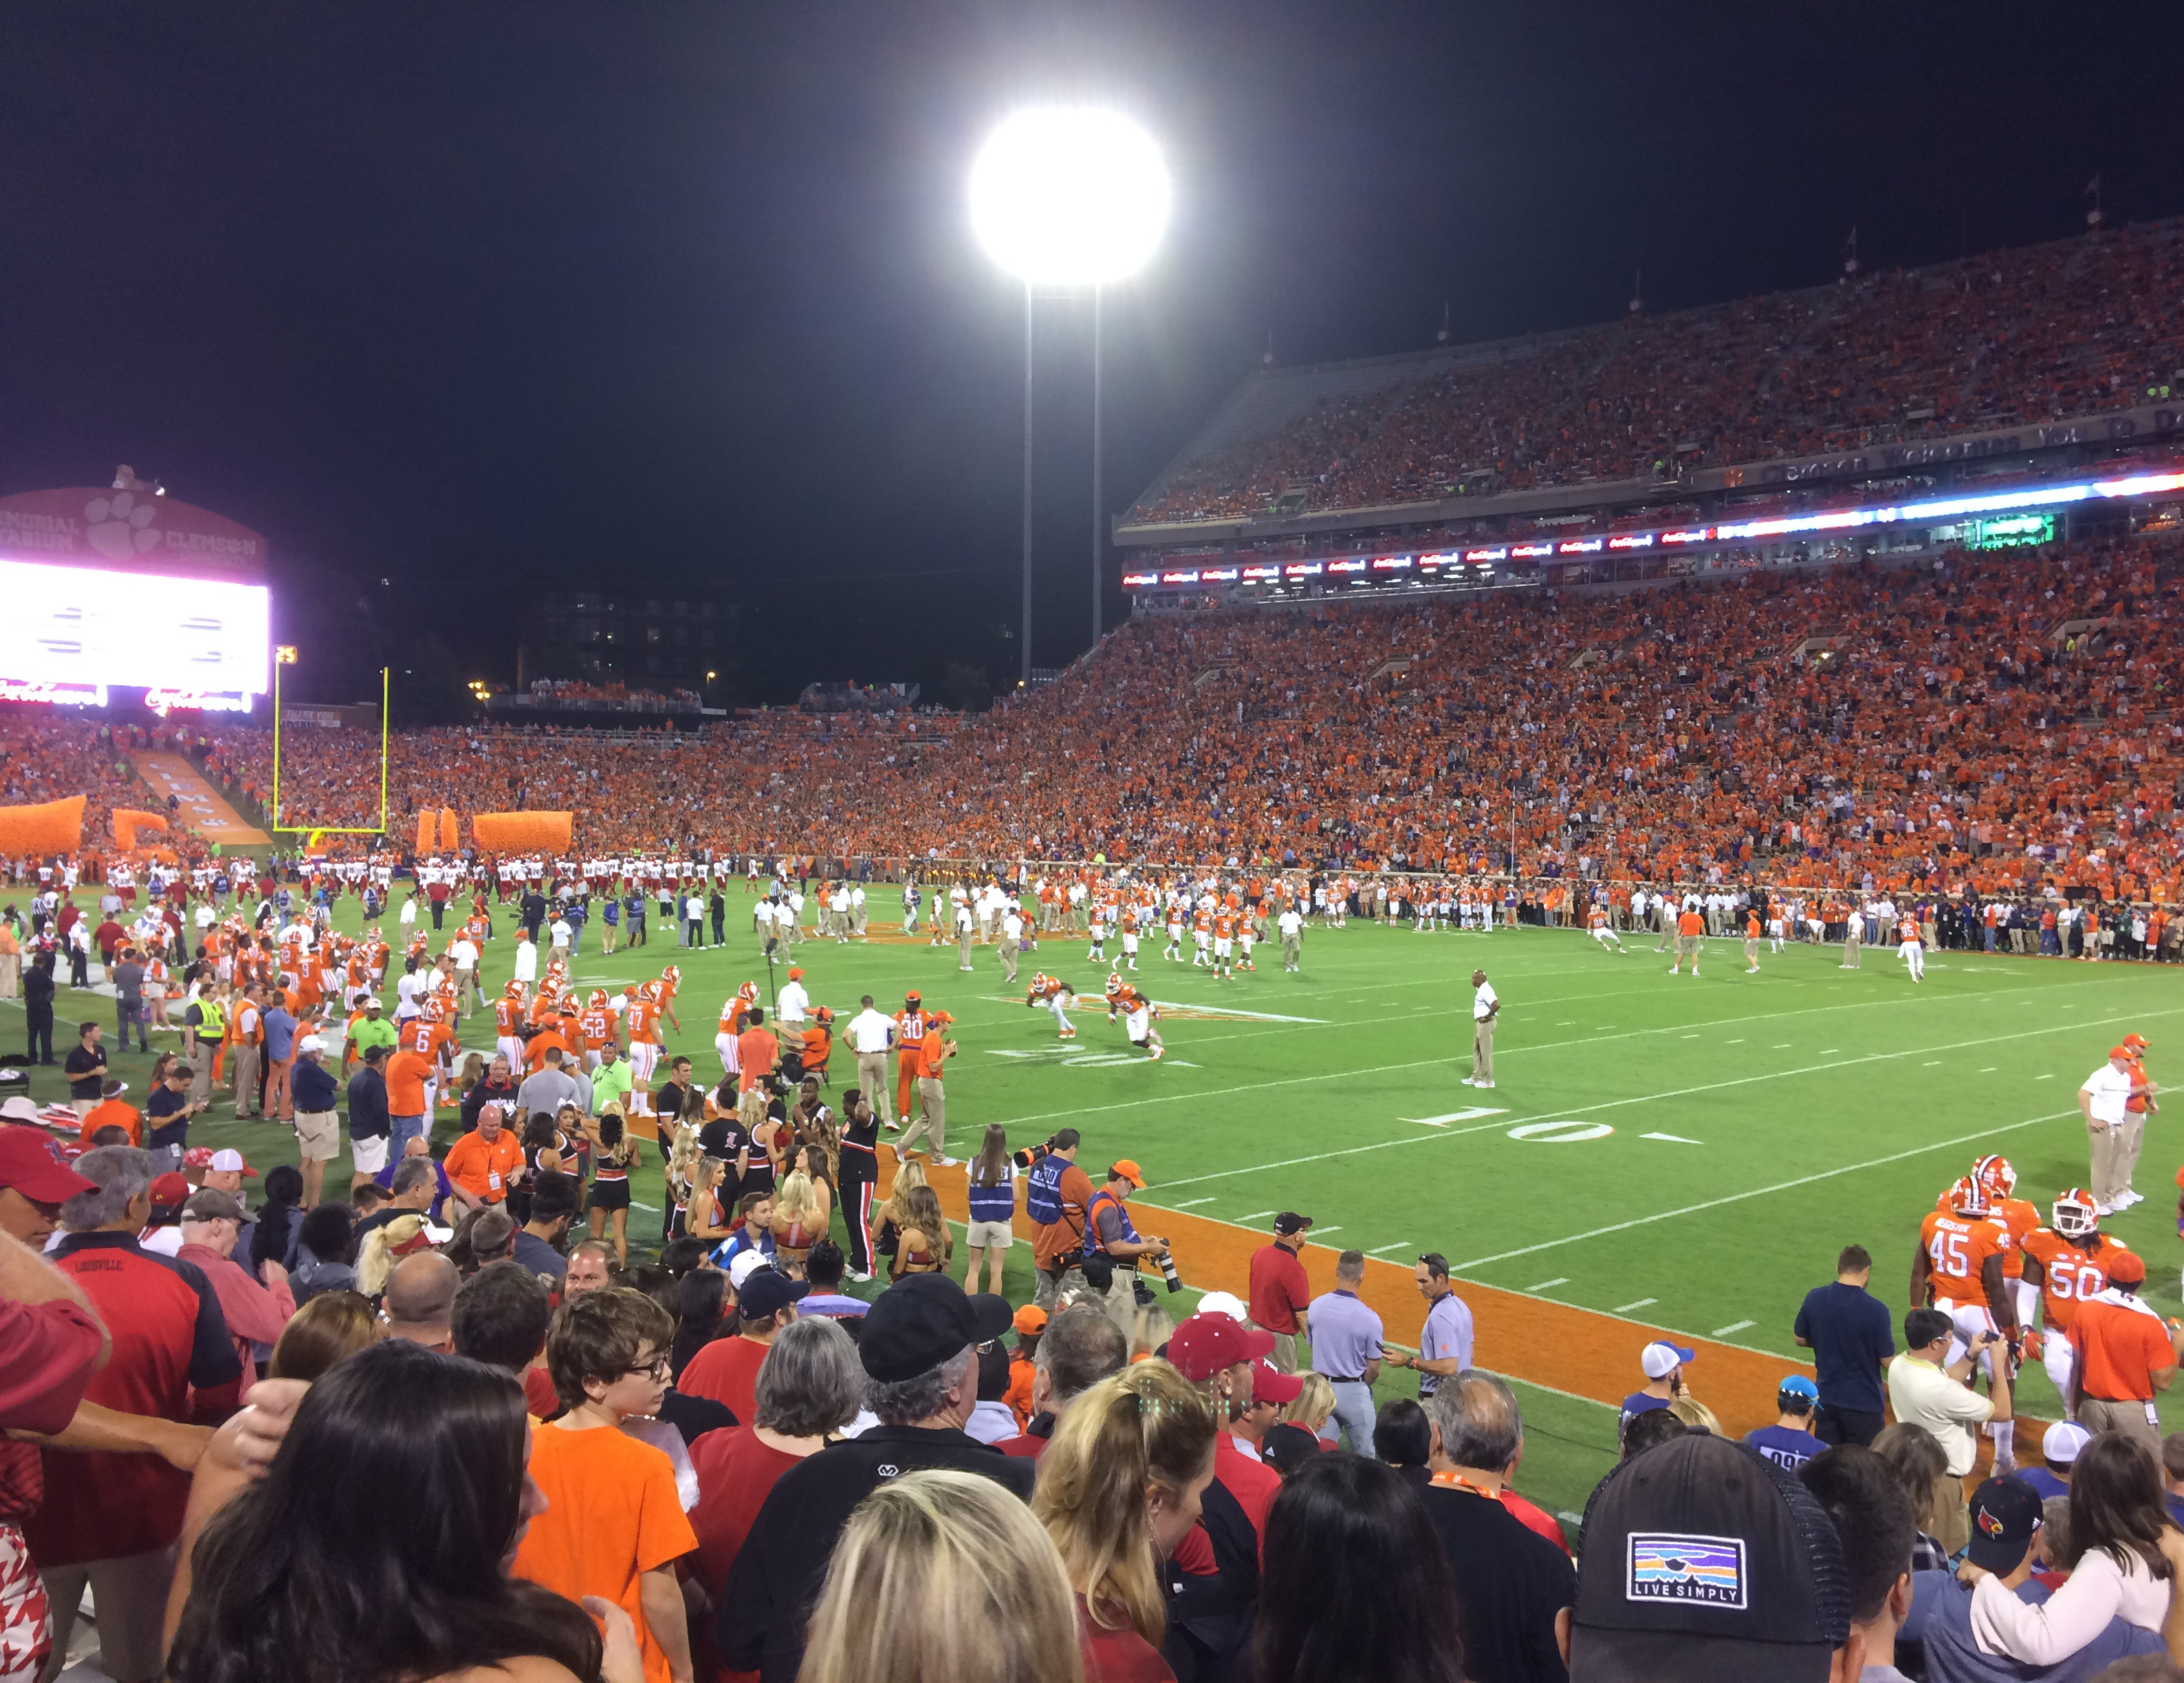 I took this photo as the teams warmed up prior to the 8 p.m. kickoff.